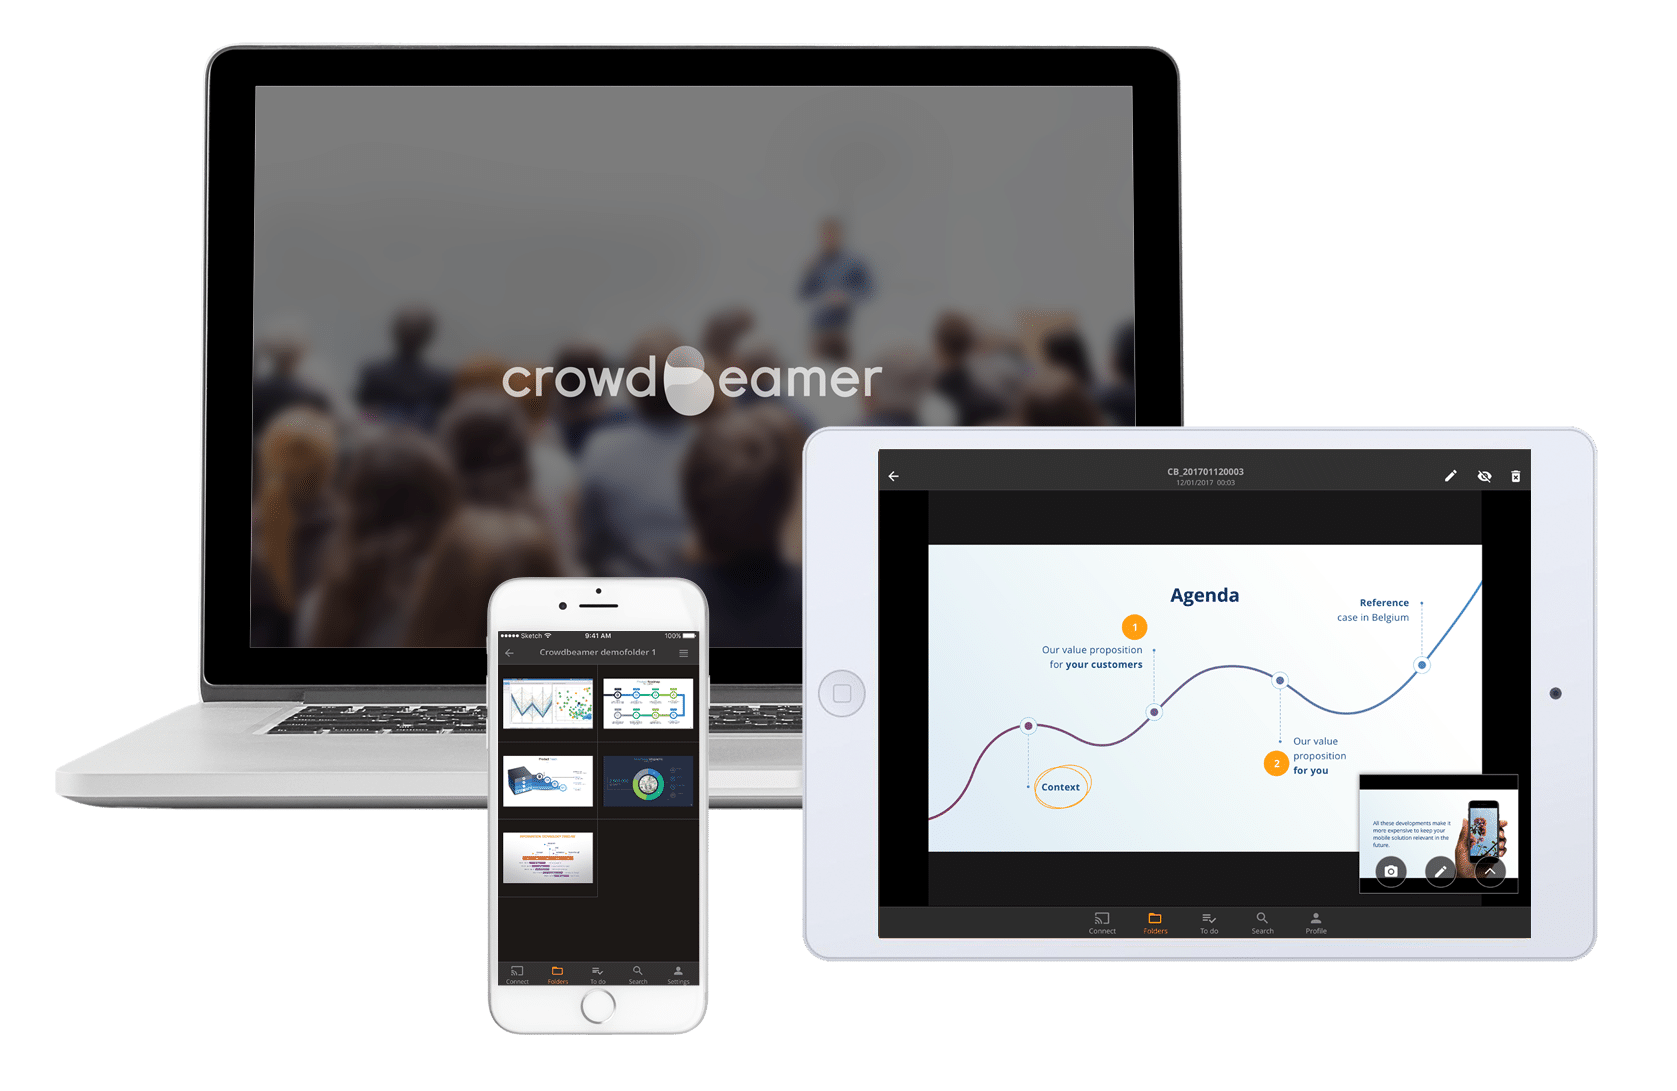 Real-time presentation sharing using the crowdbeamer app on laptop, tablet & smartphone